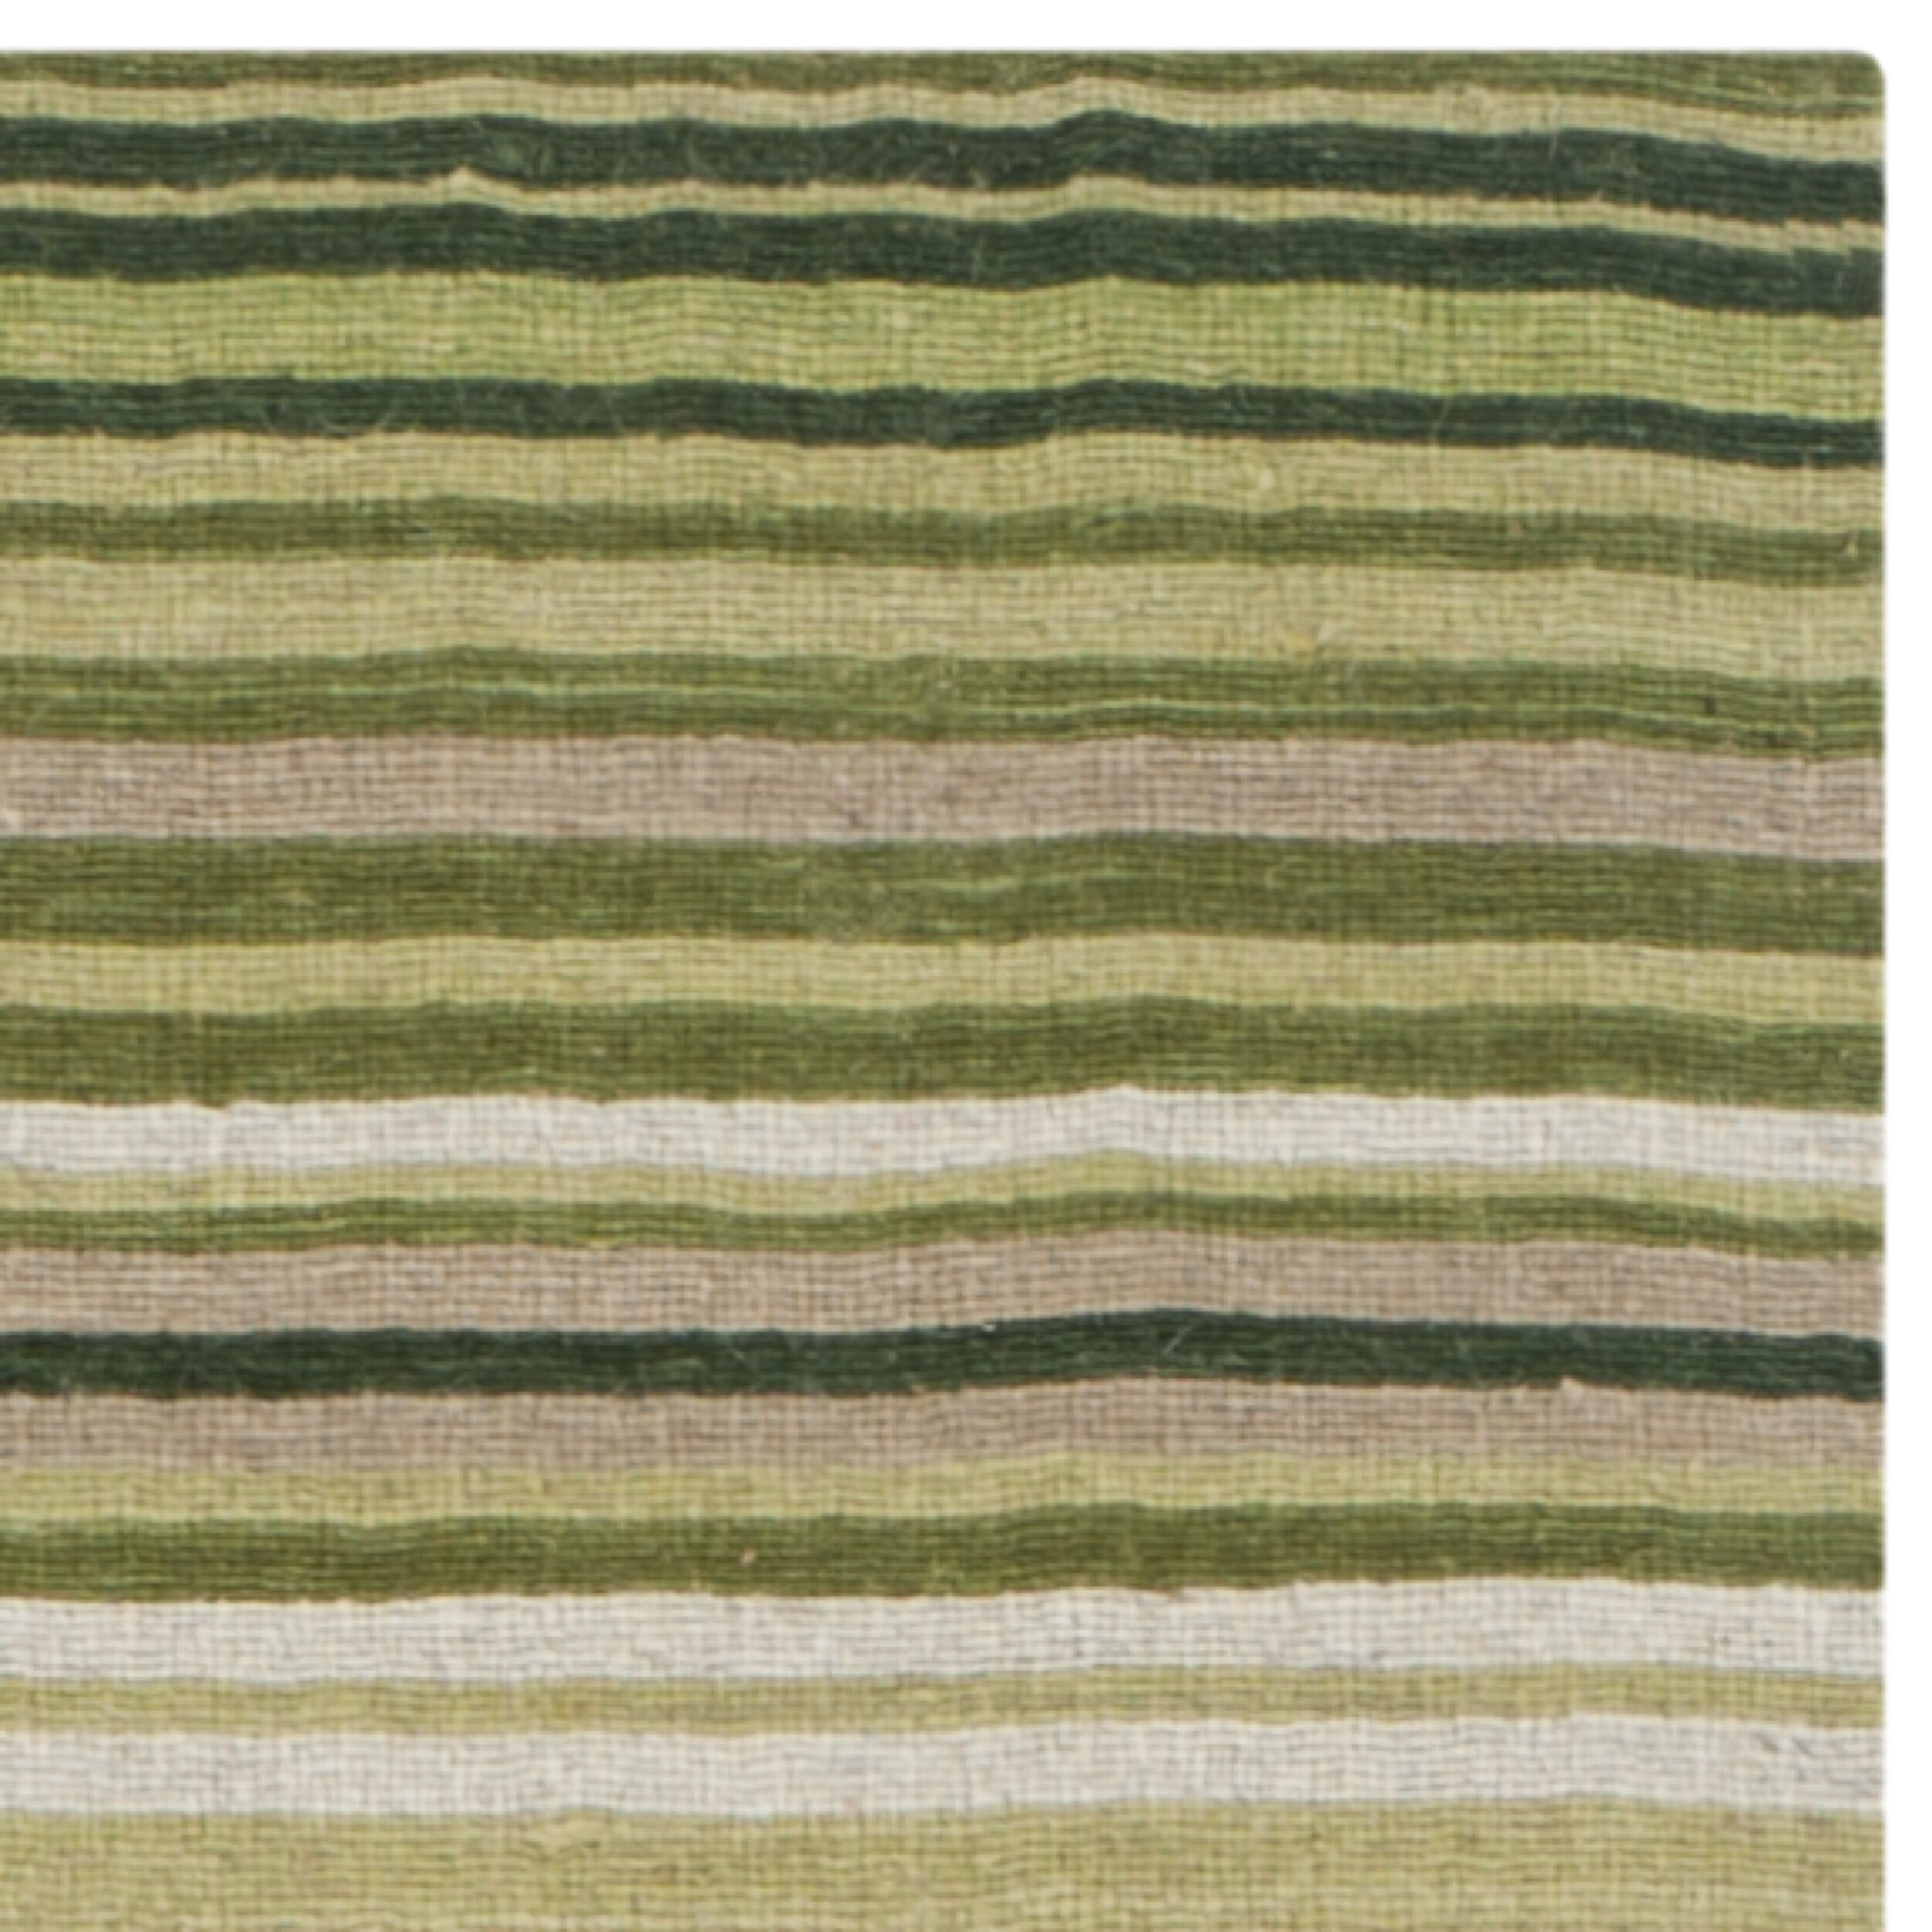 safavieh marbella green striped contemporary area rug cheerful home office rug wayfair safavieh